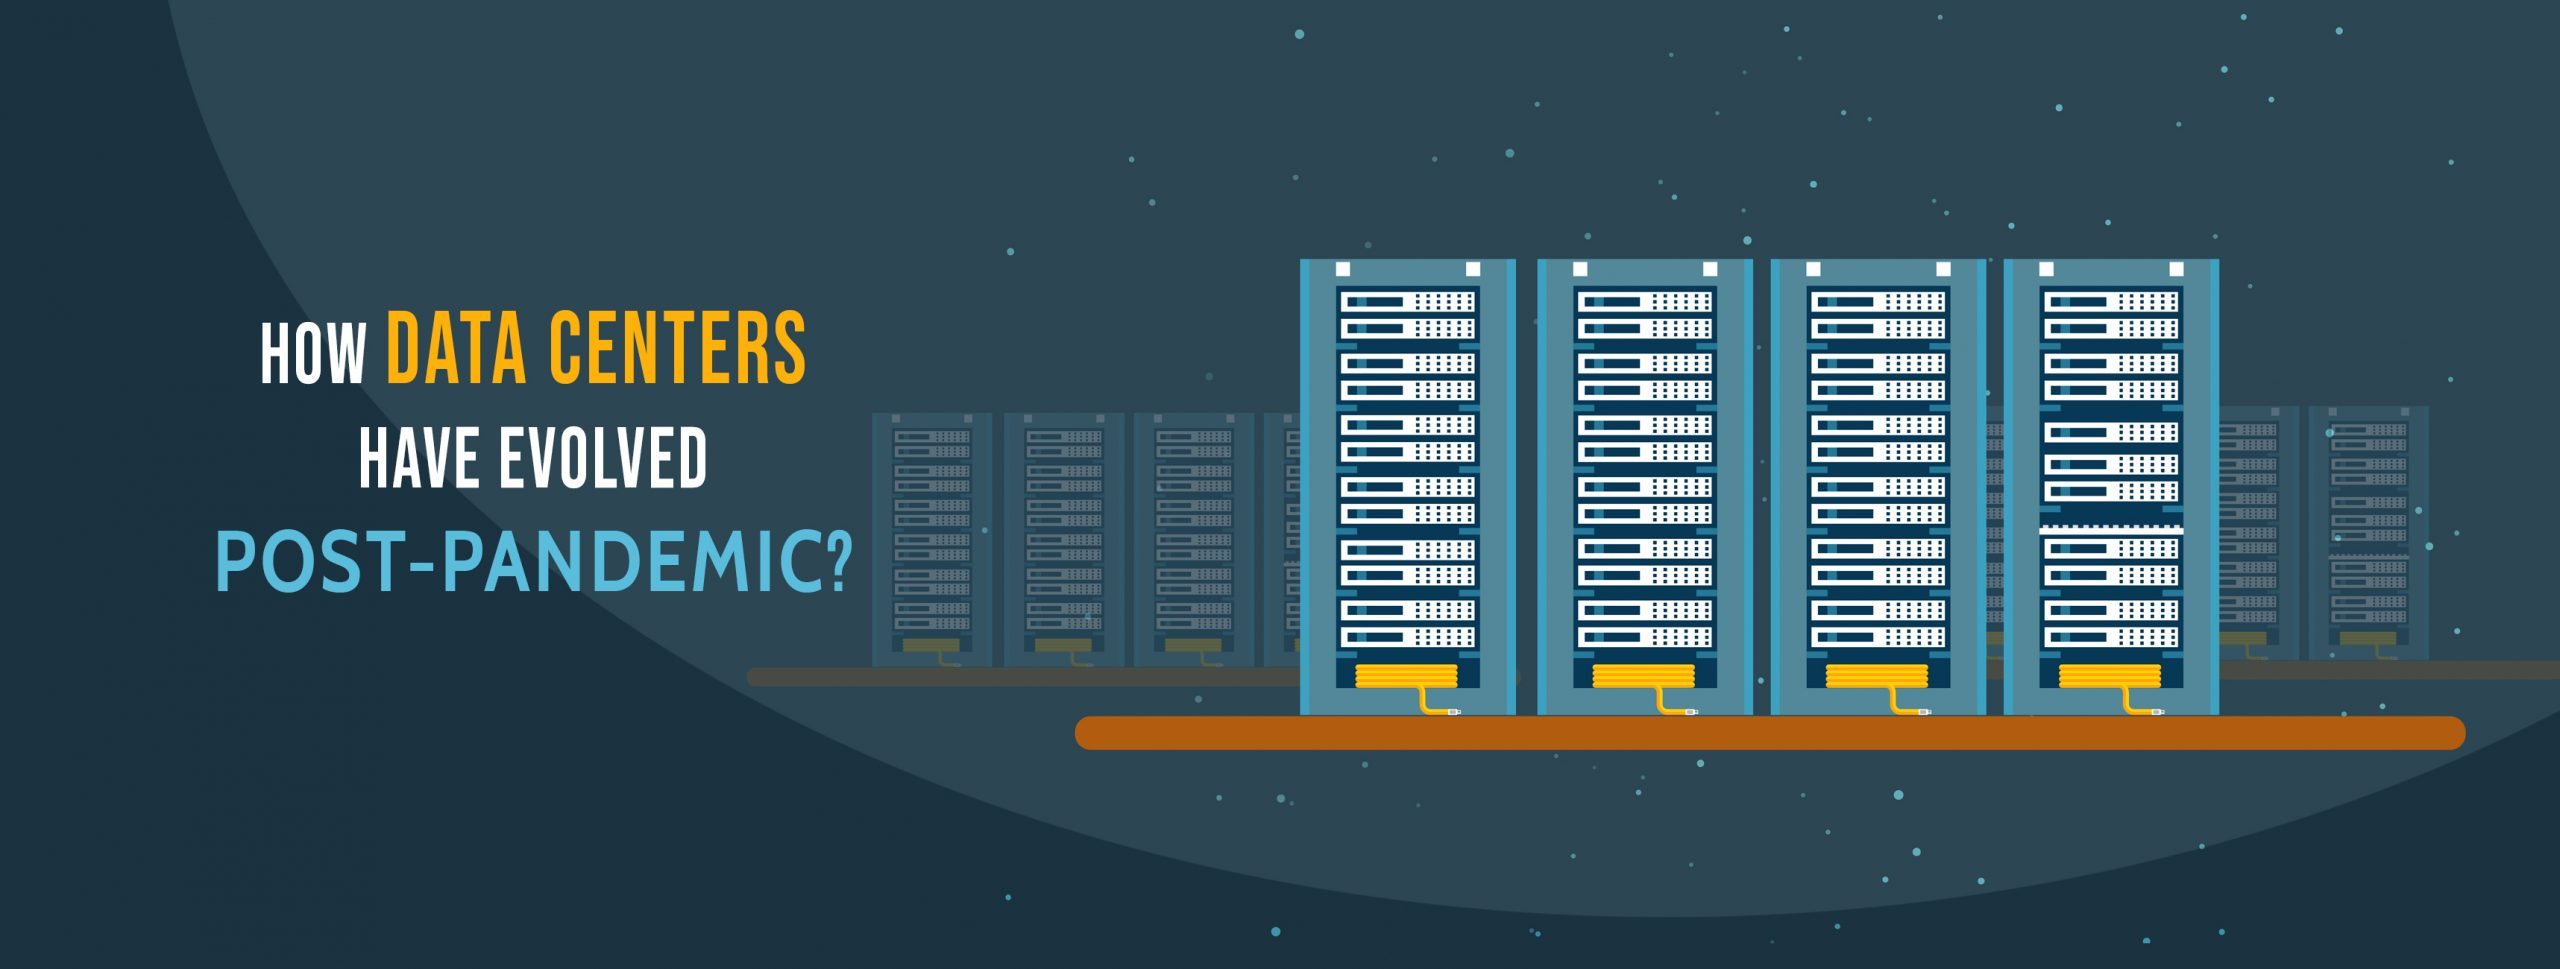 How Data Centers have evolved post-pandemic?